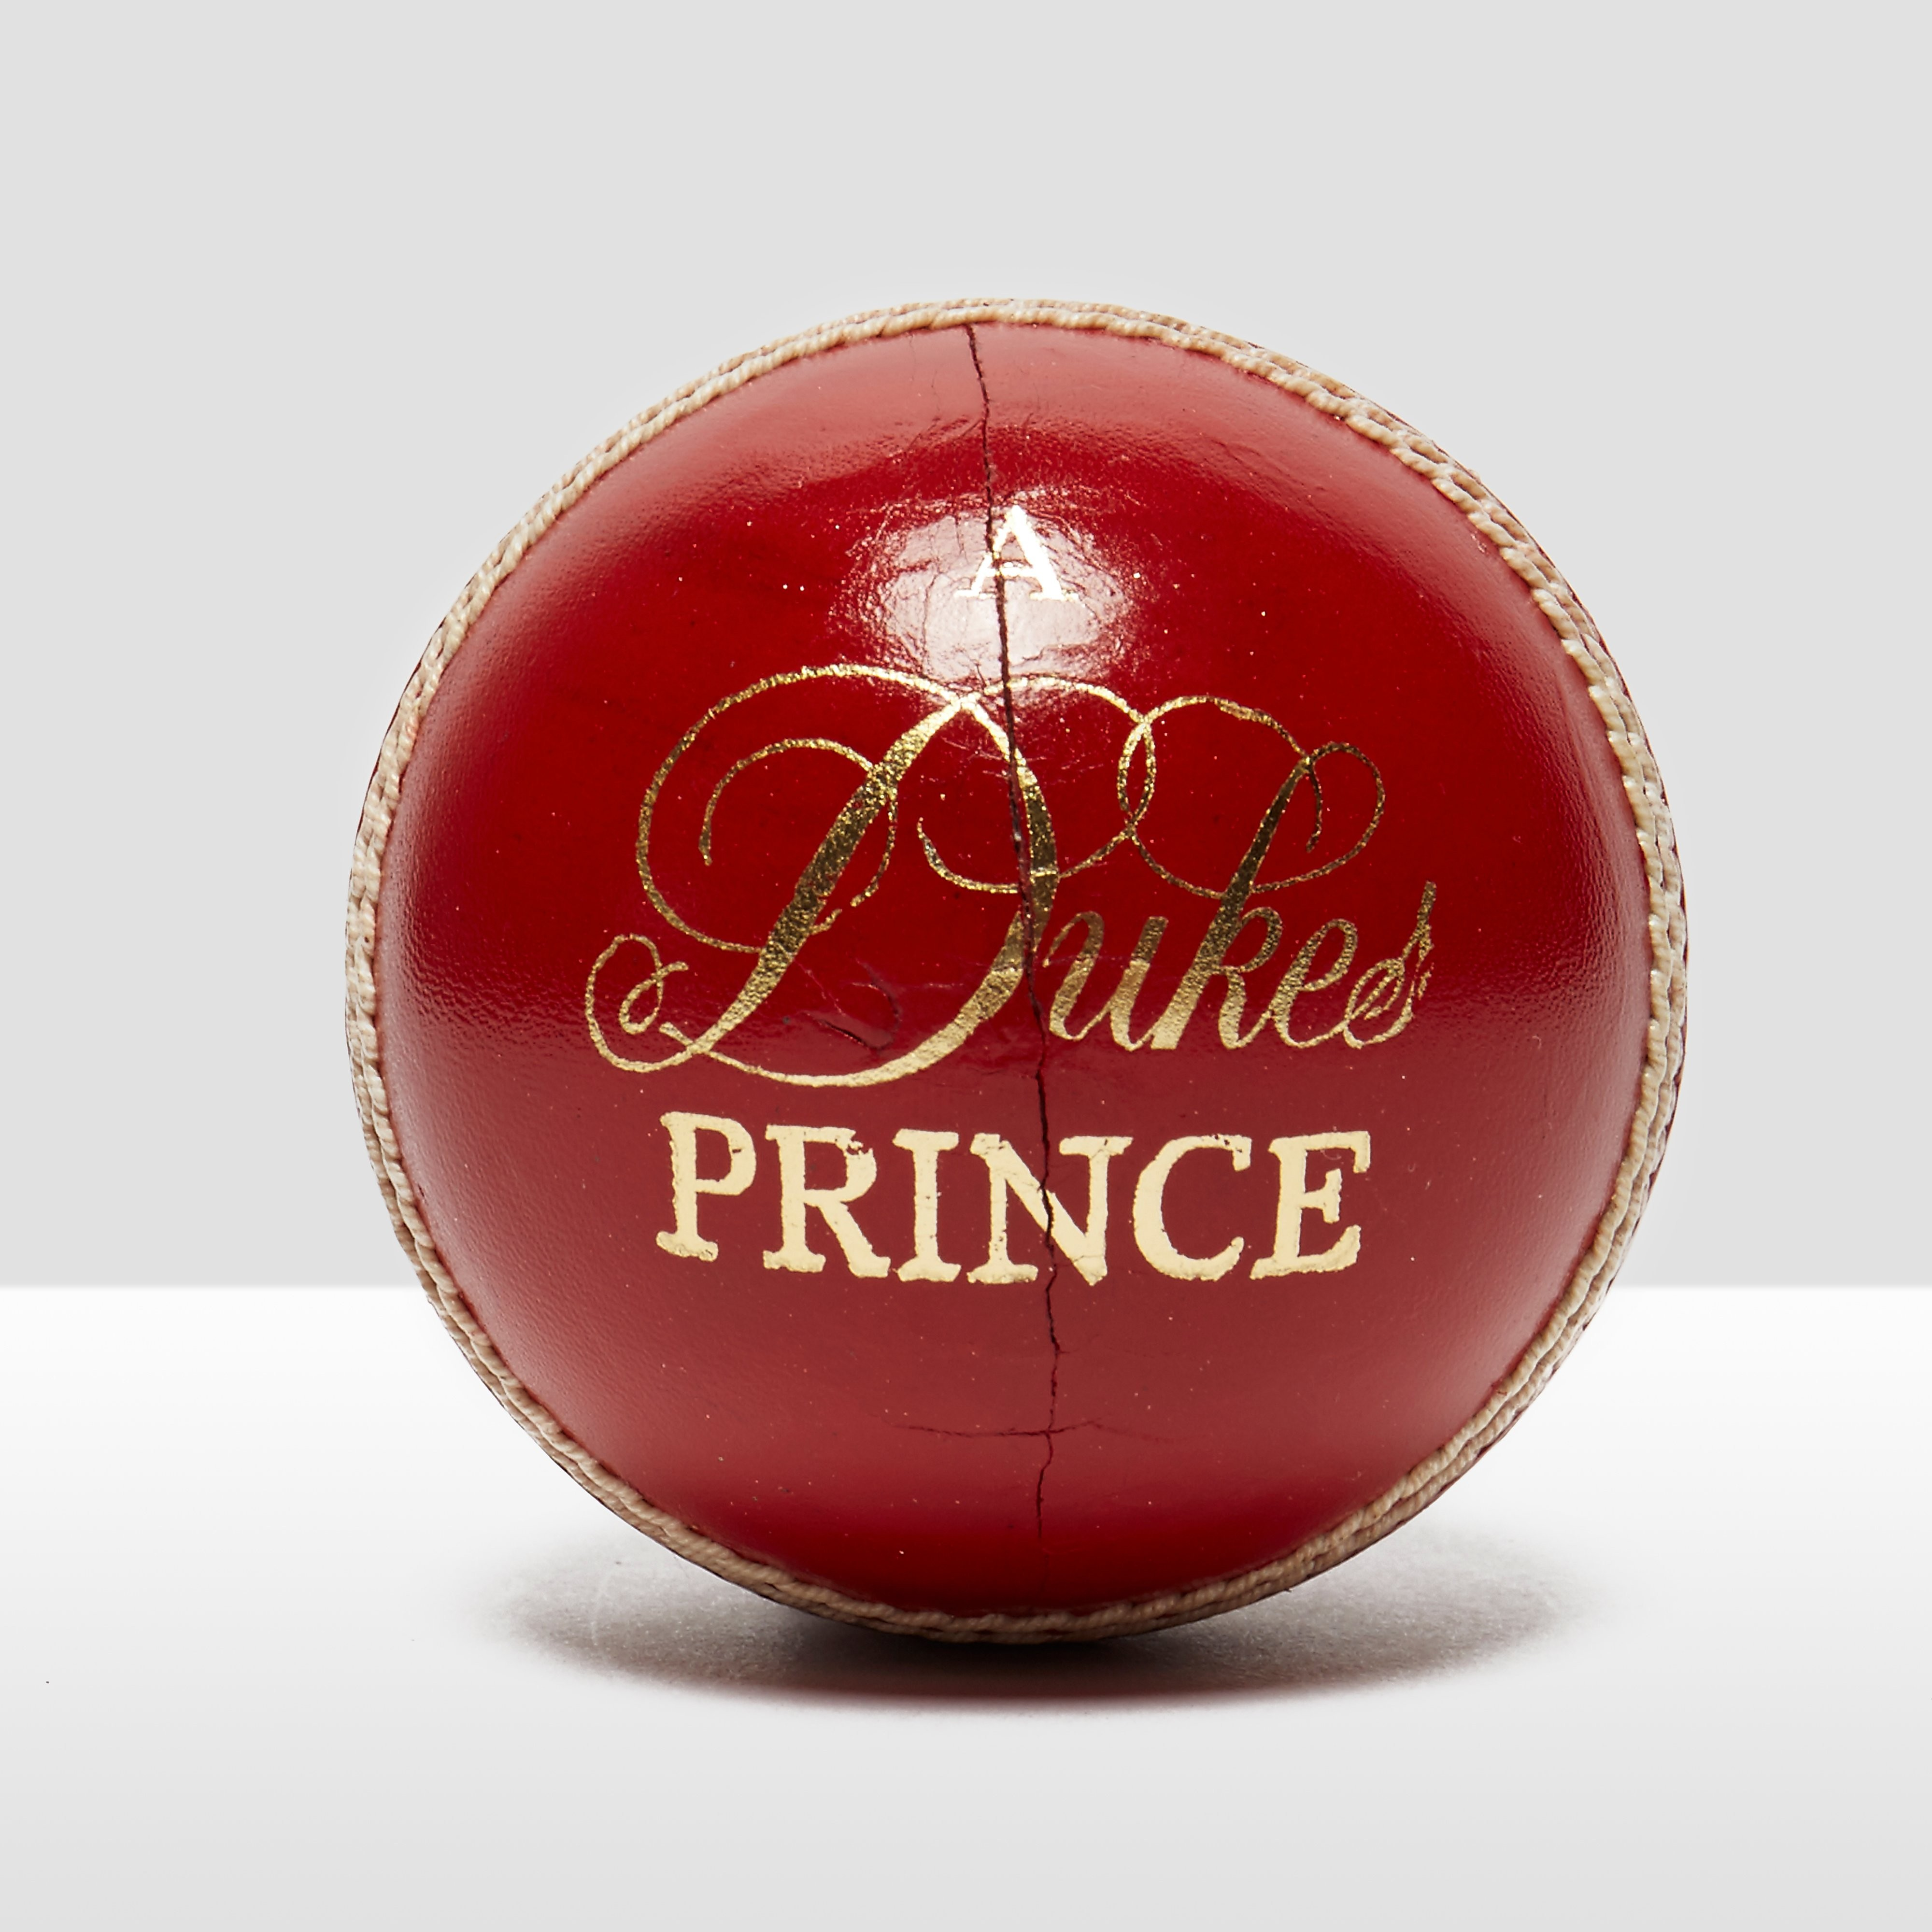 Dukes Prince Cricket Ball